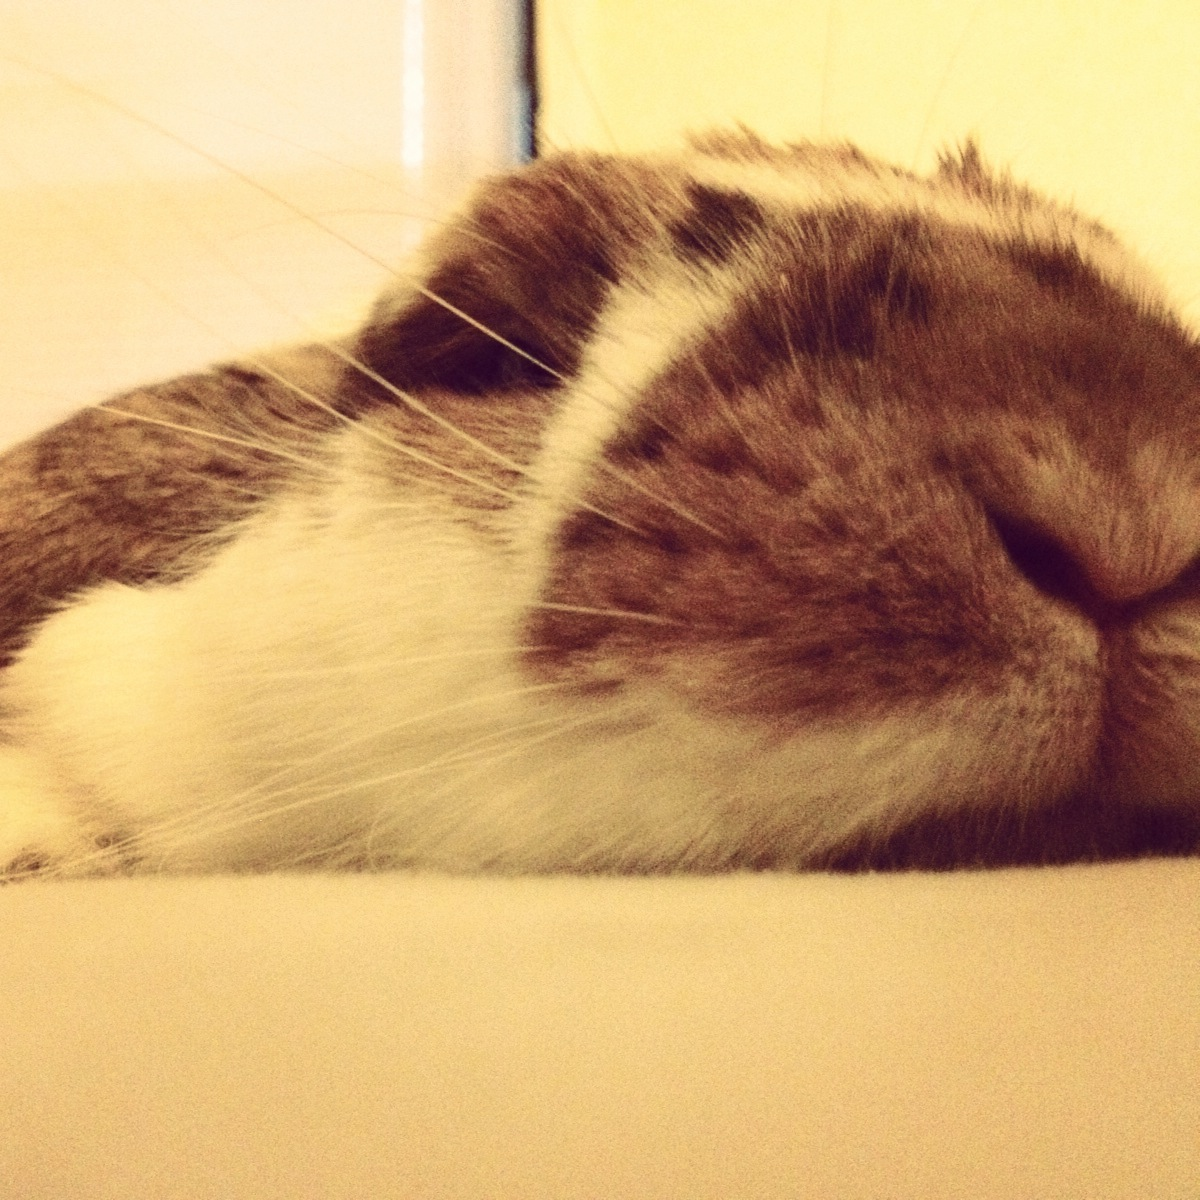 Bunny Has Achieved Ultimate Melted Status